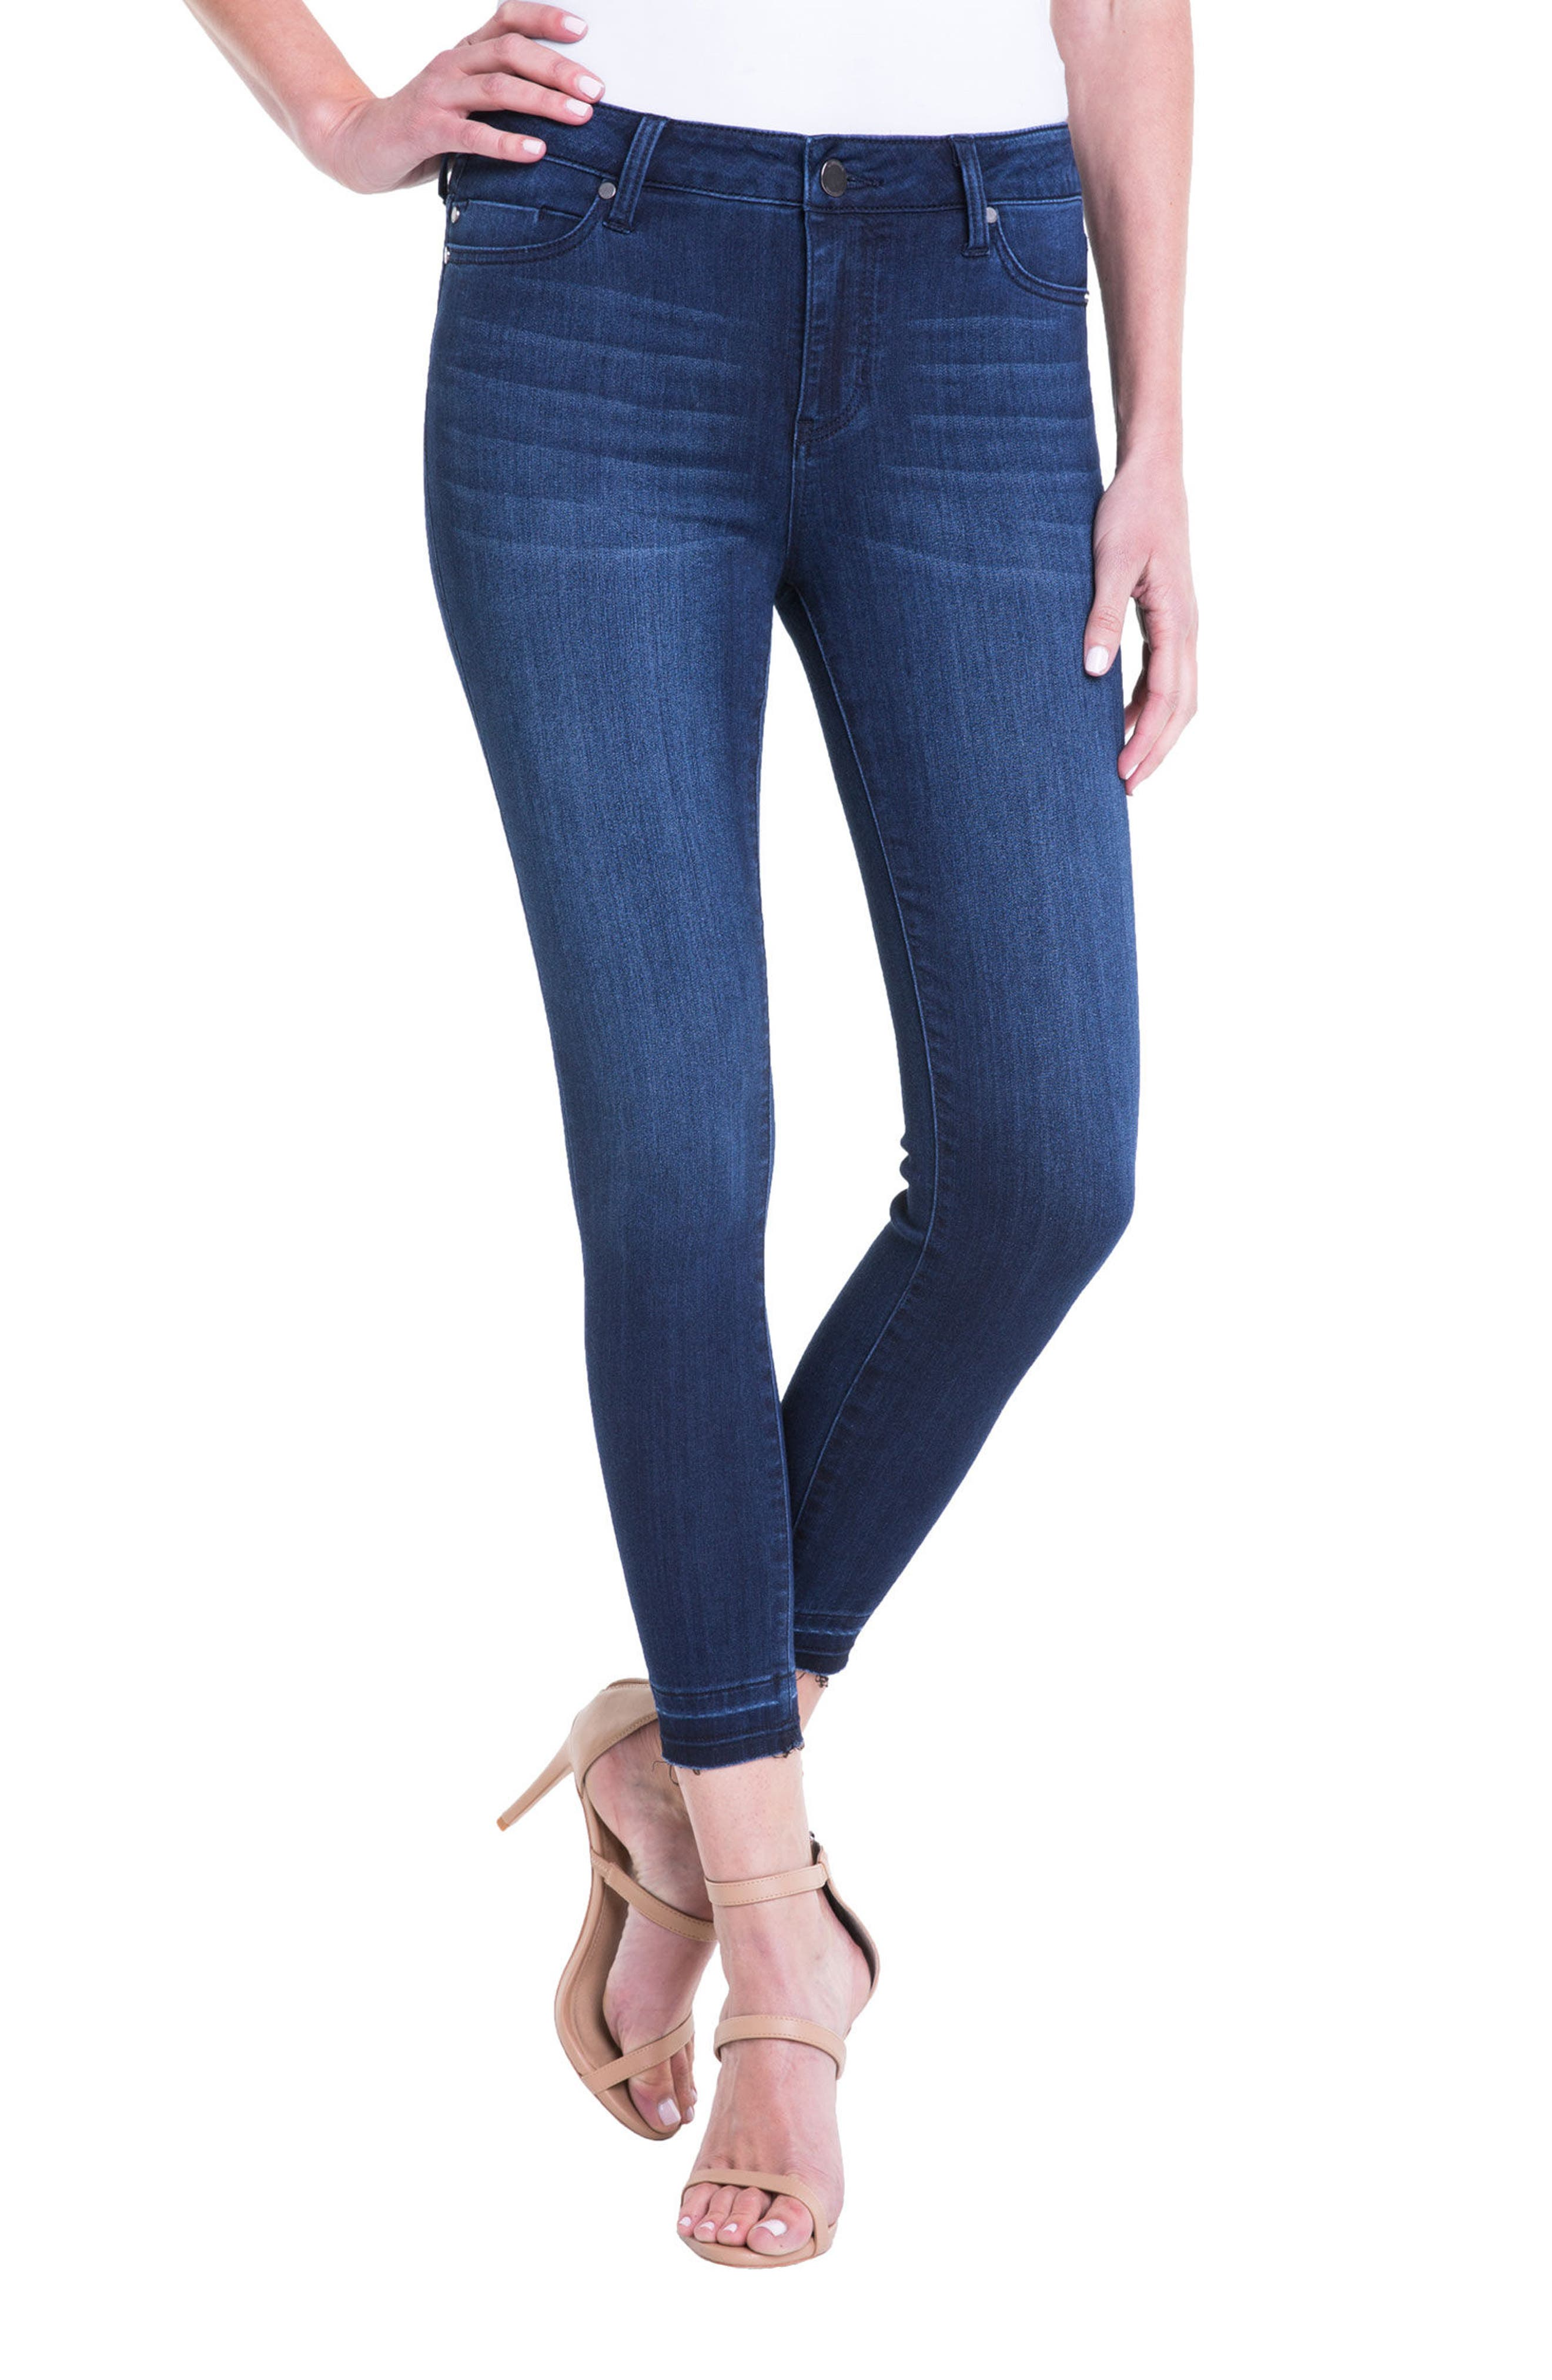 Main Image - Liverpool Jeans Company Avery High Rise Release Hem Stretch Crop Skinny Jeans (Estrella Med Dark)